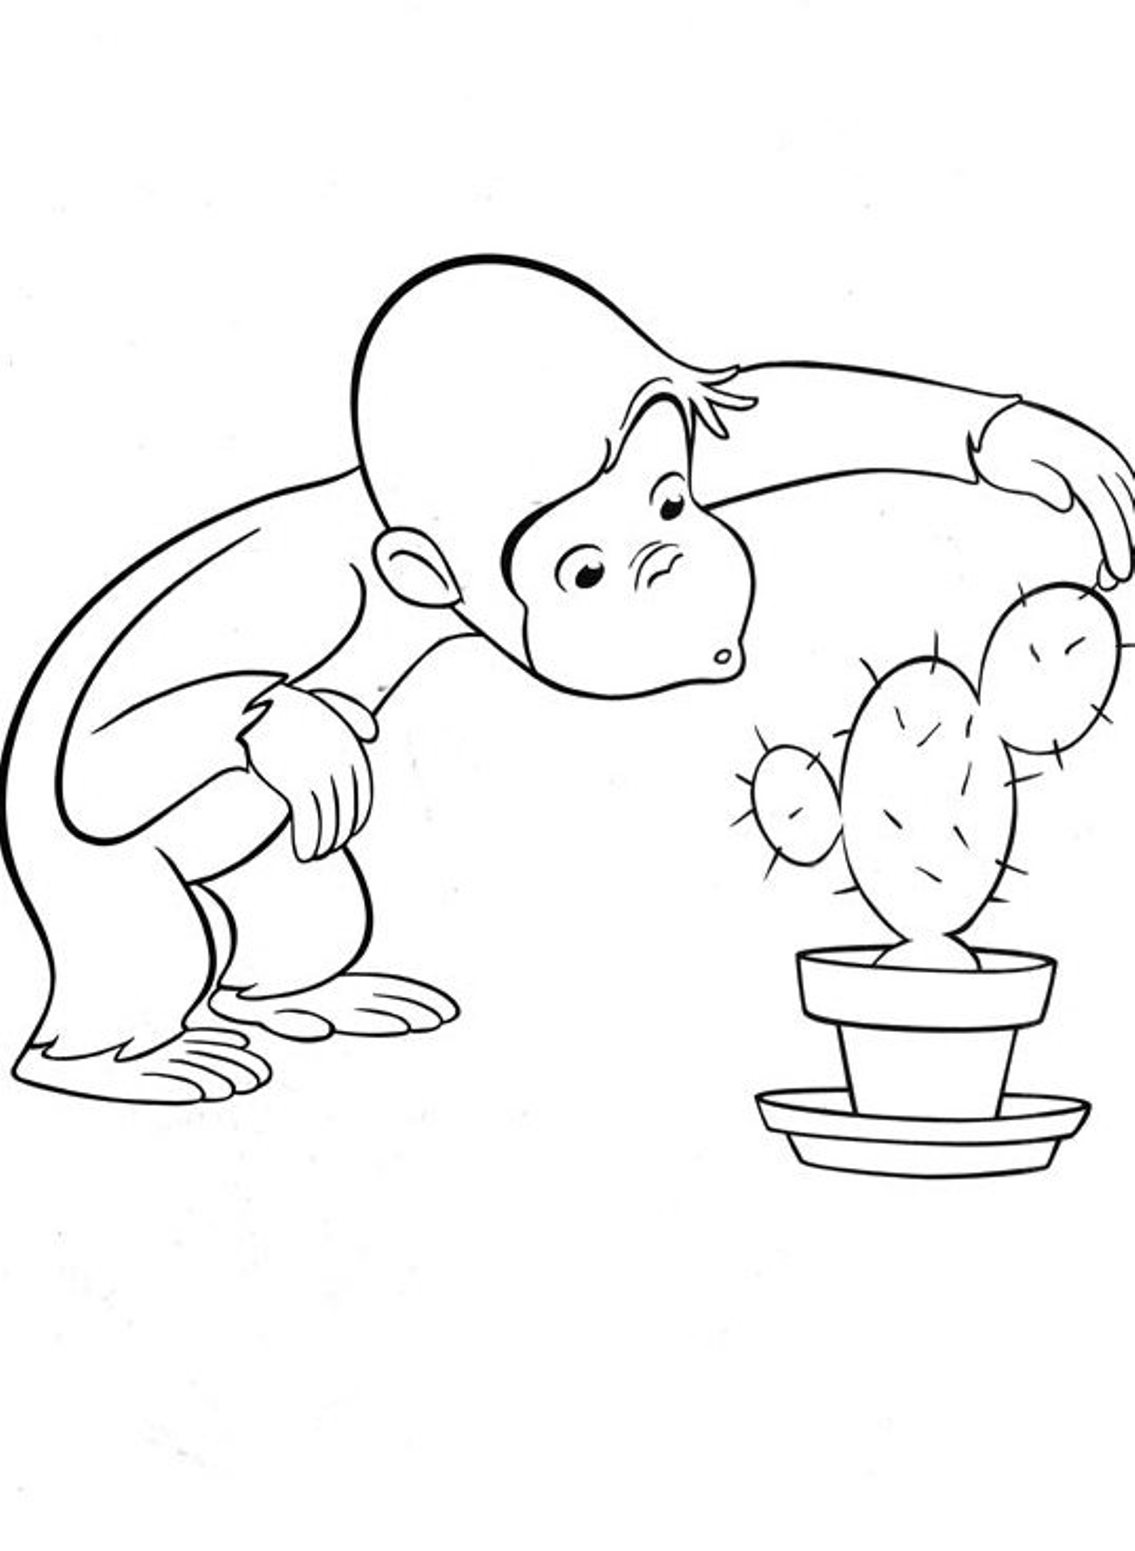 Adult Best Curious George Coloring Pages Printable Gallery Images cute curious george coloring pages to download and print for free images